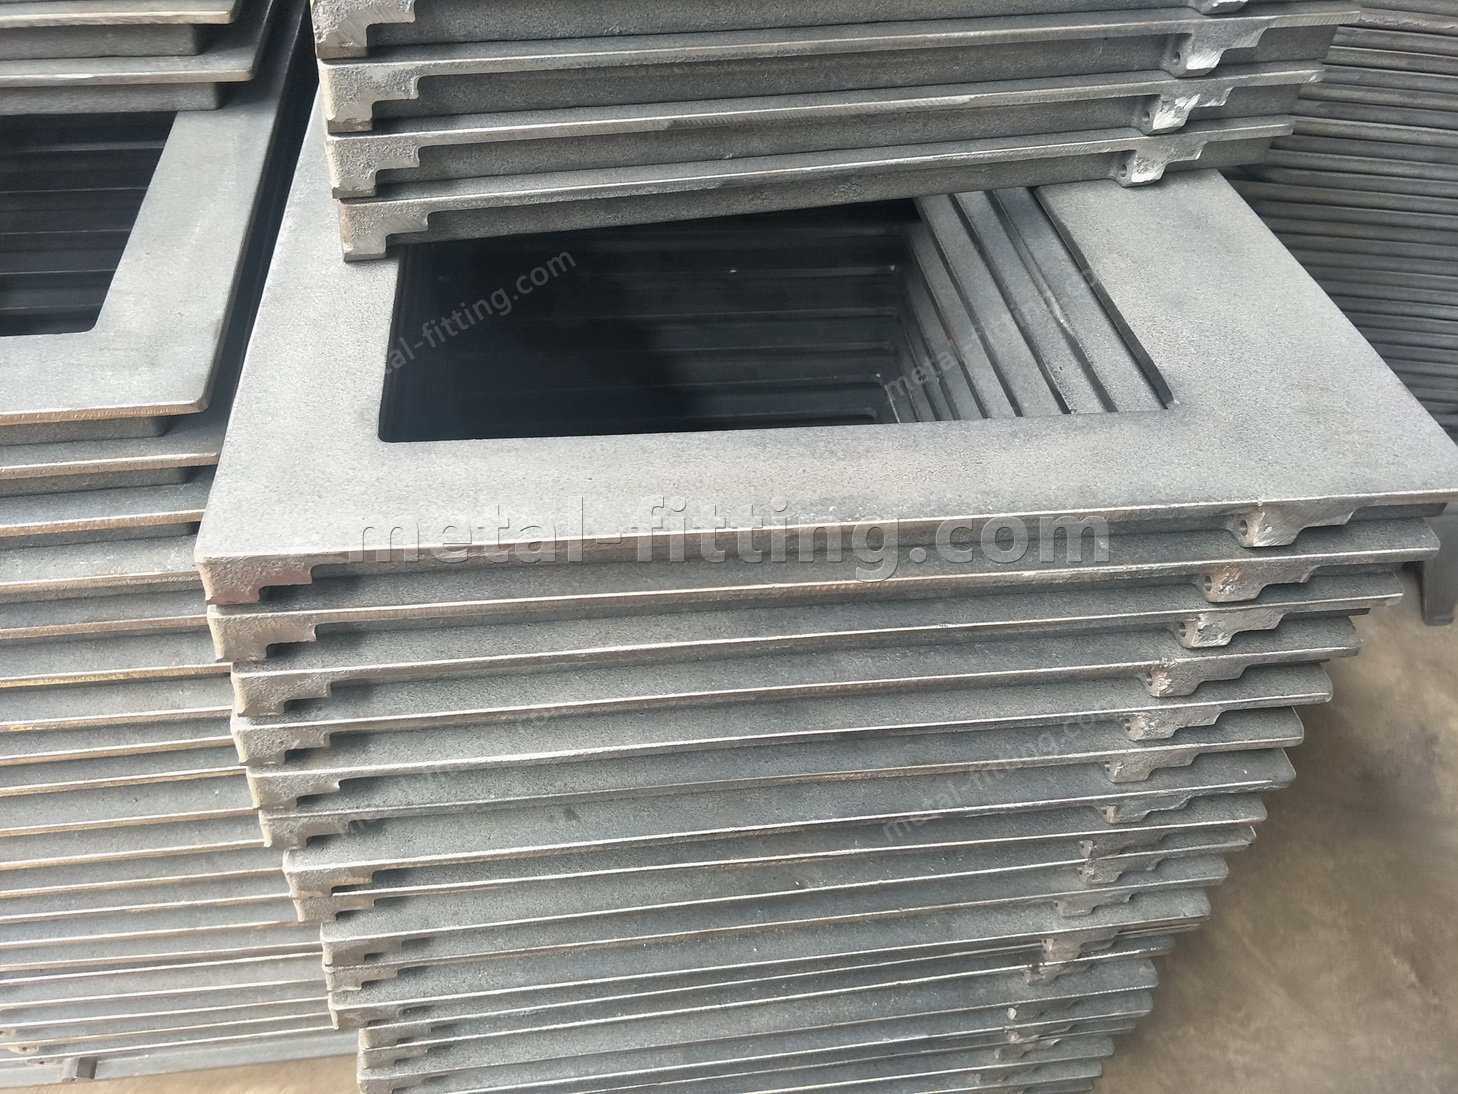 customization steel plate or other steel metal itemss-IMG20180726102956